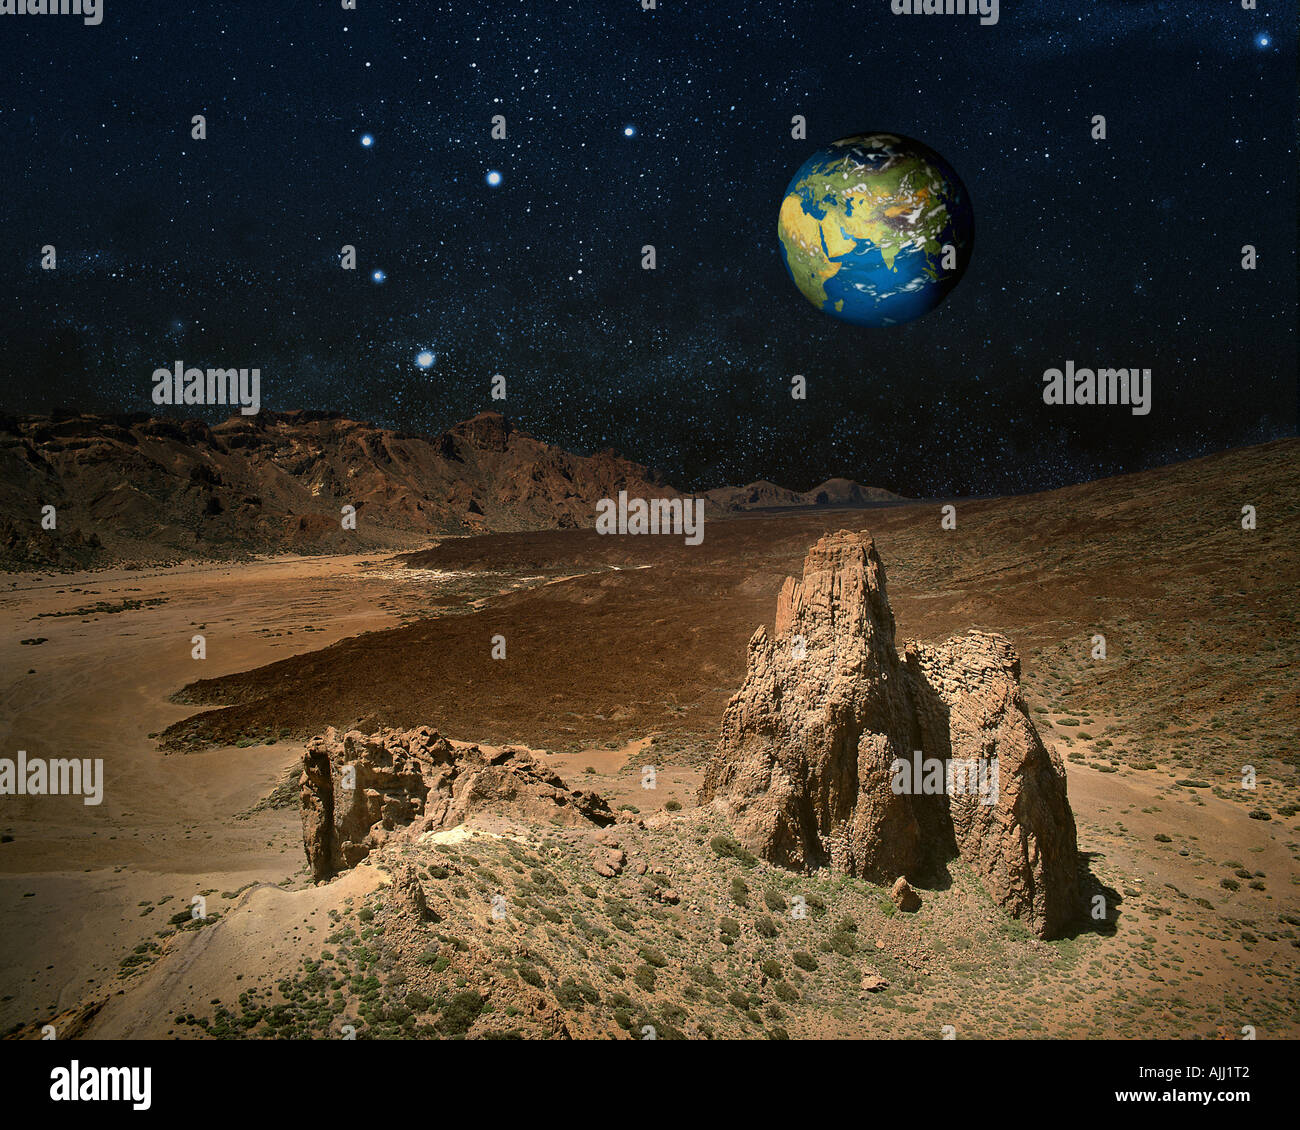 CONCEPT PHOTOGRAPHY:  Planet Earth from outer Space - Stock Image